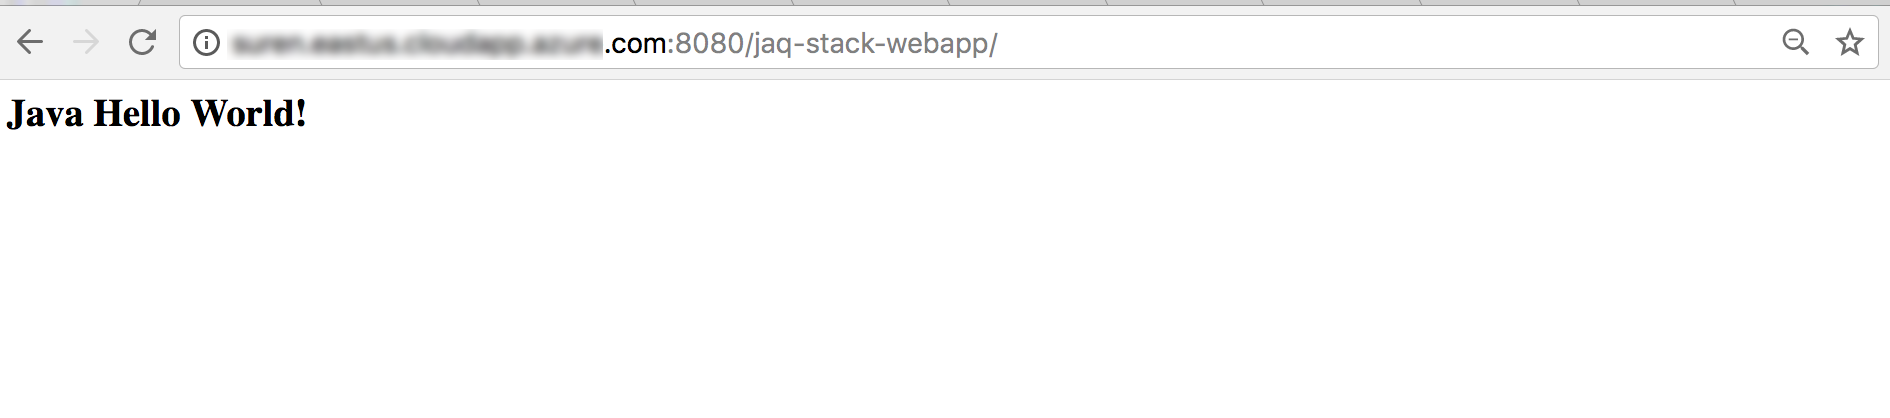 jaq-stack-sample-screen-browser